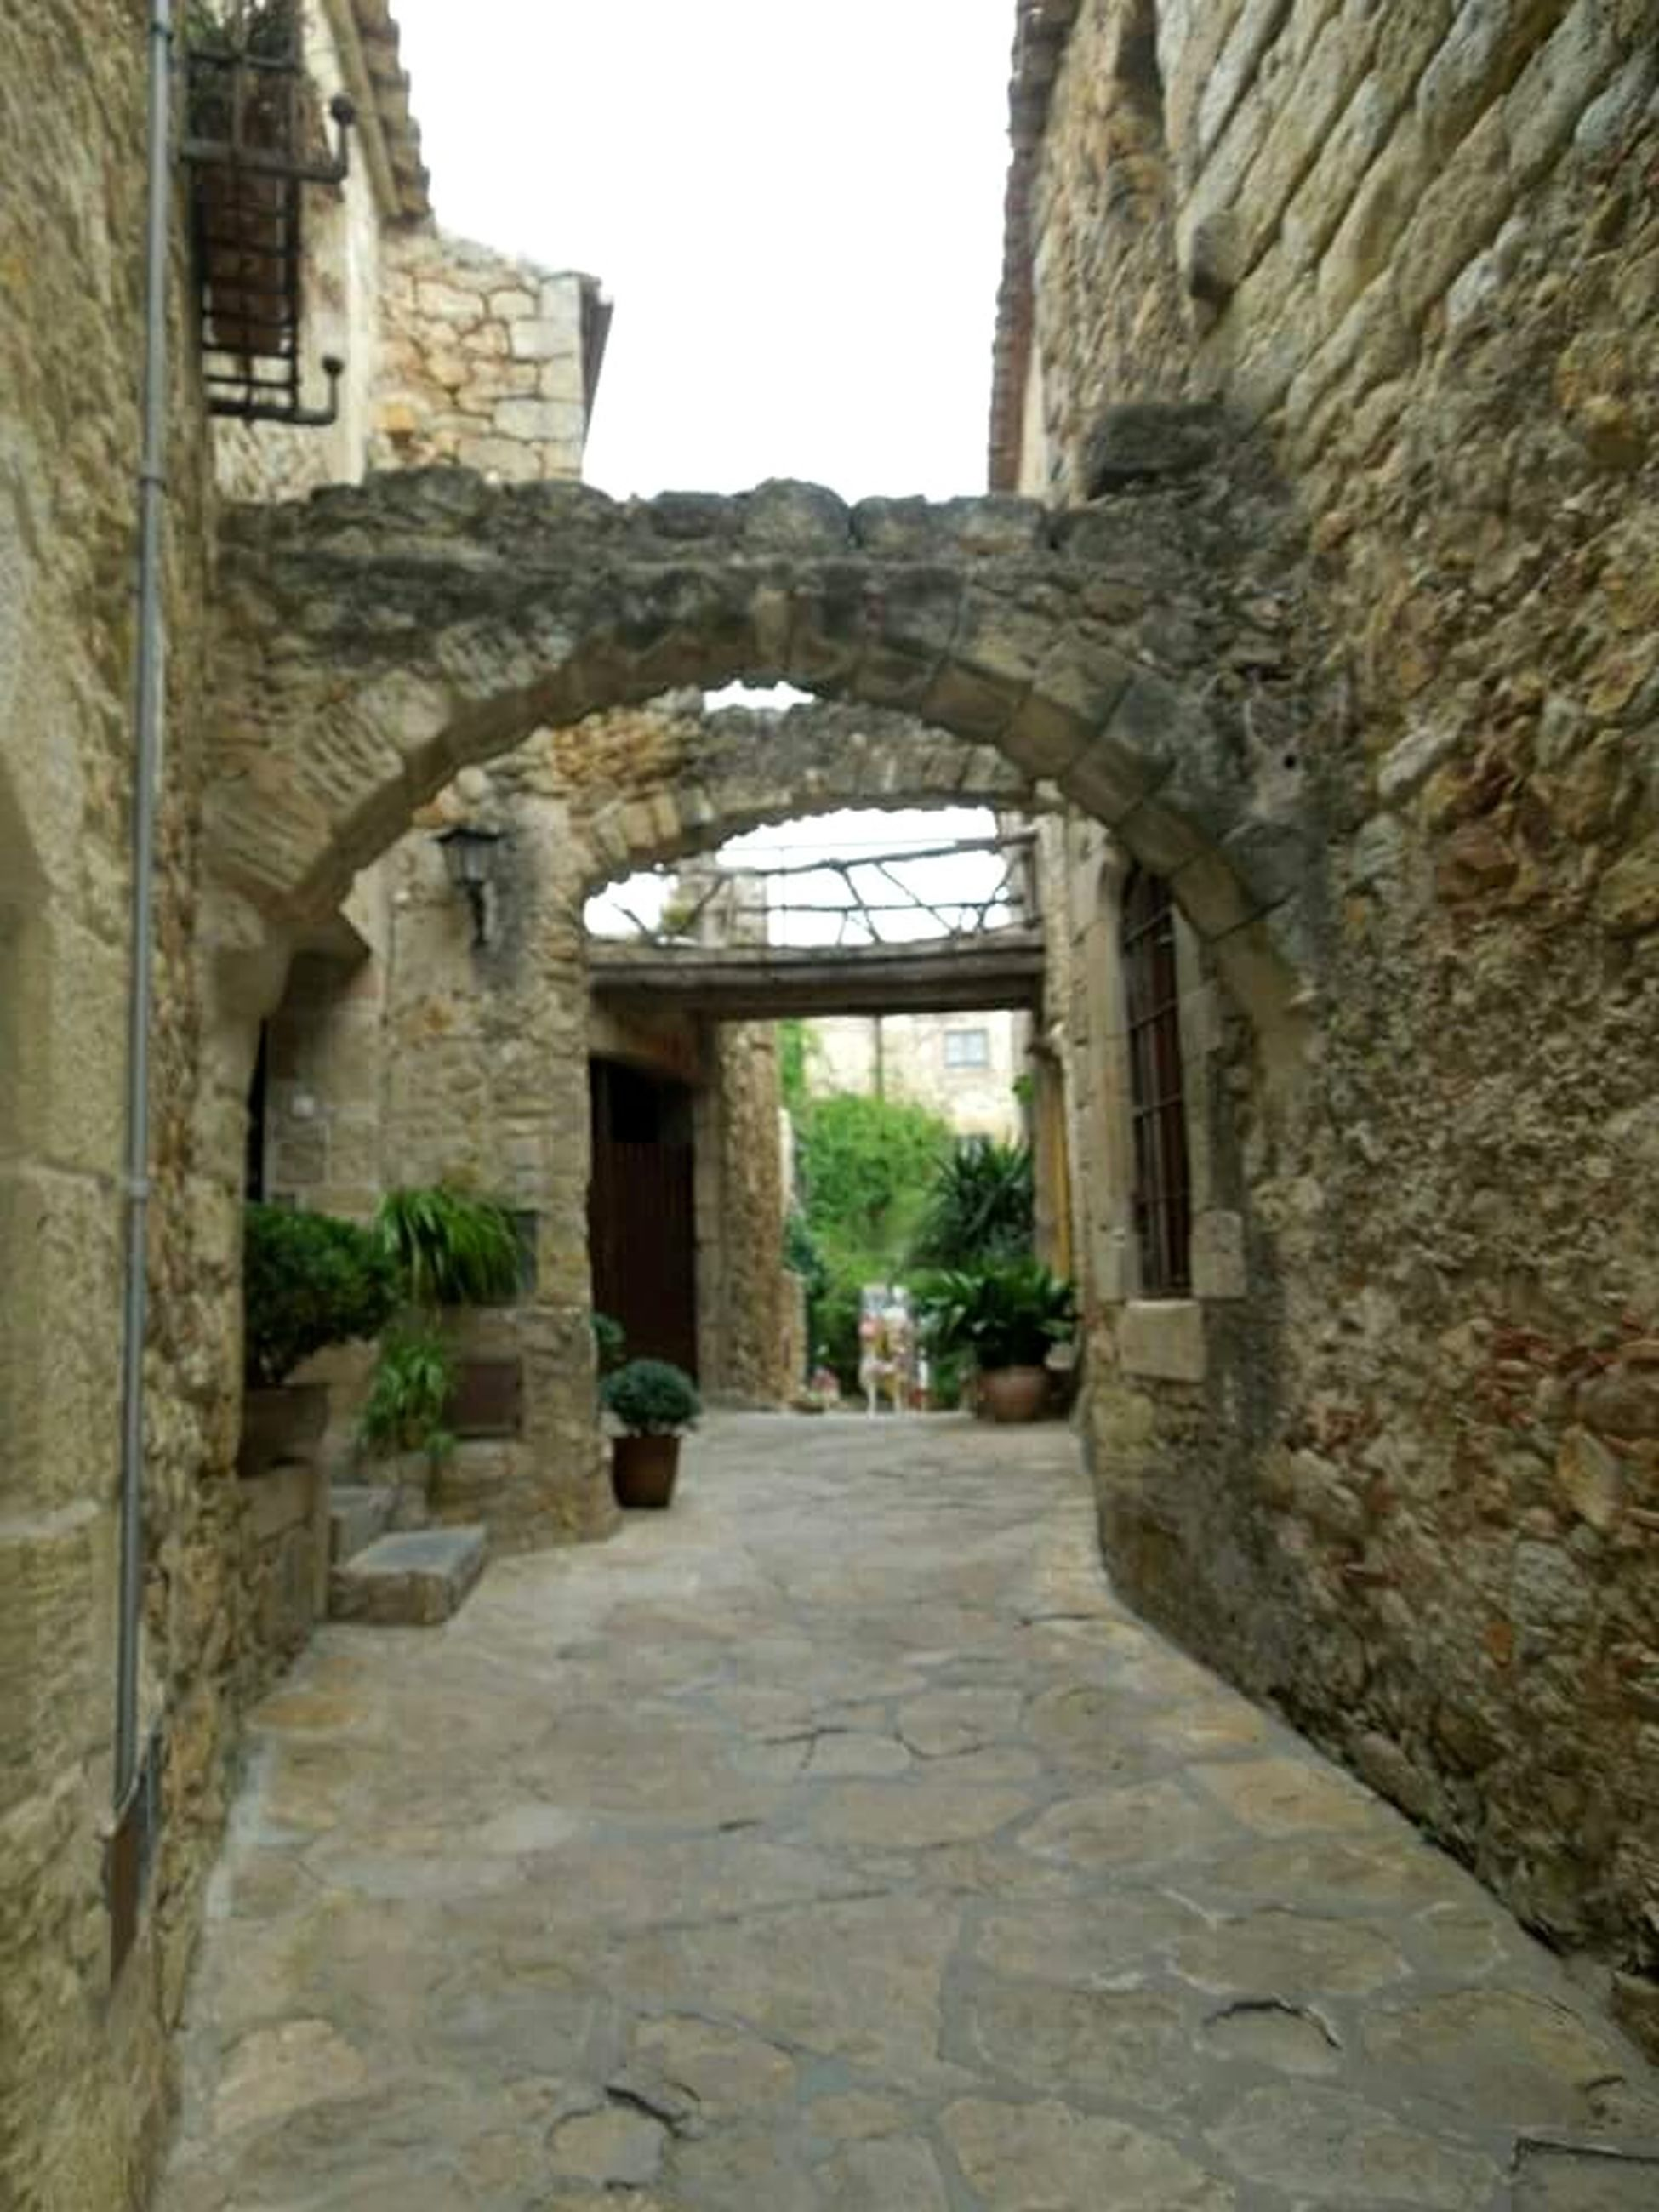 architecture, history, built structure, arch, ancient, the way forward, building exterior, day, no people, walkway, ancient civilization, outdoors